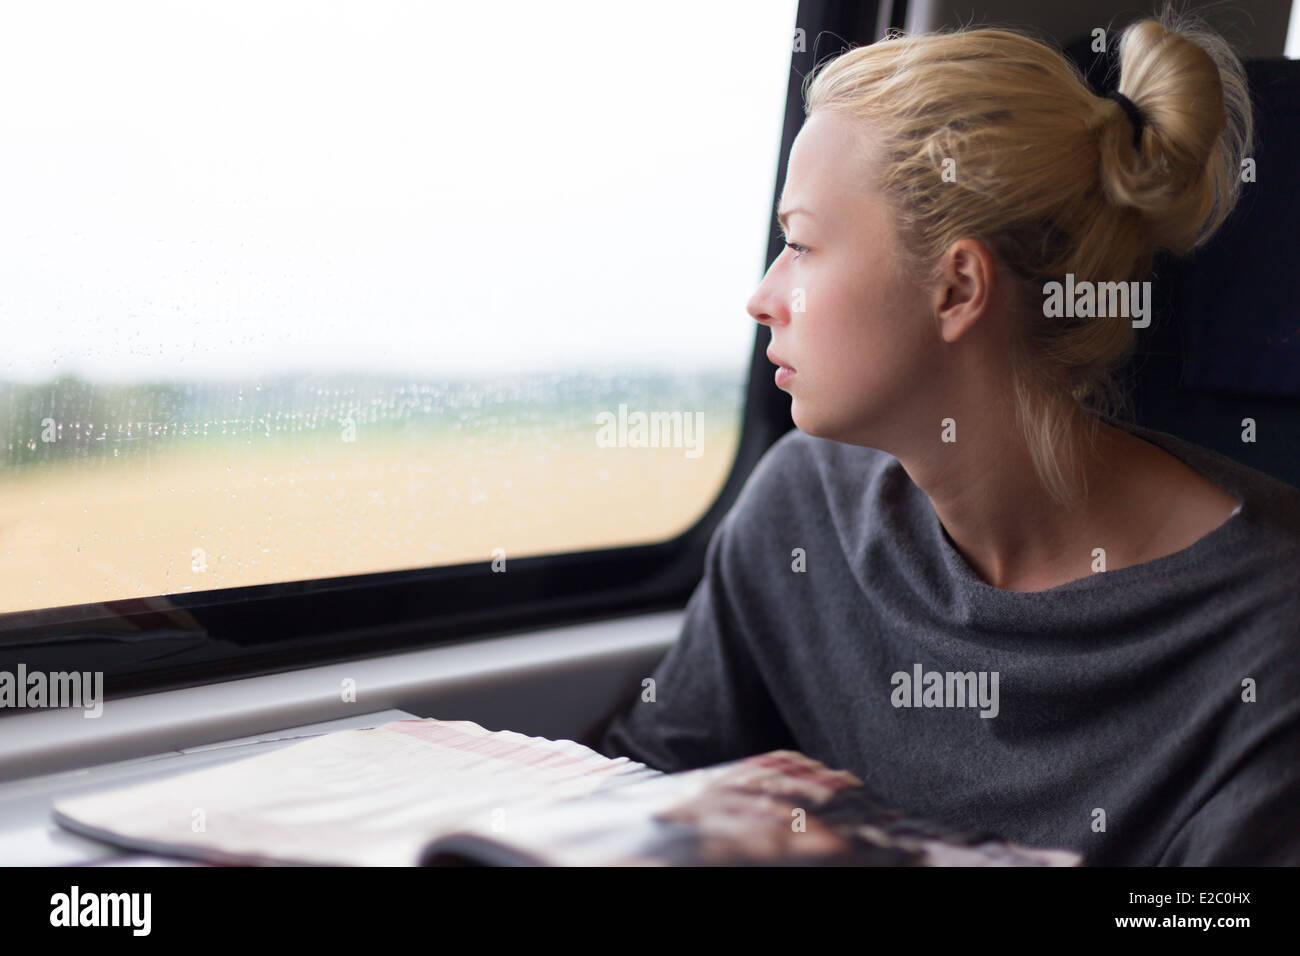 Lady traveling by train. - Stock Image